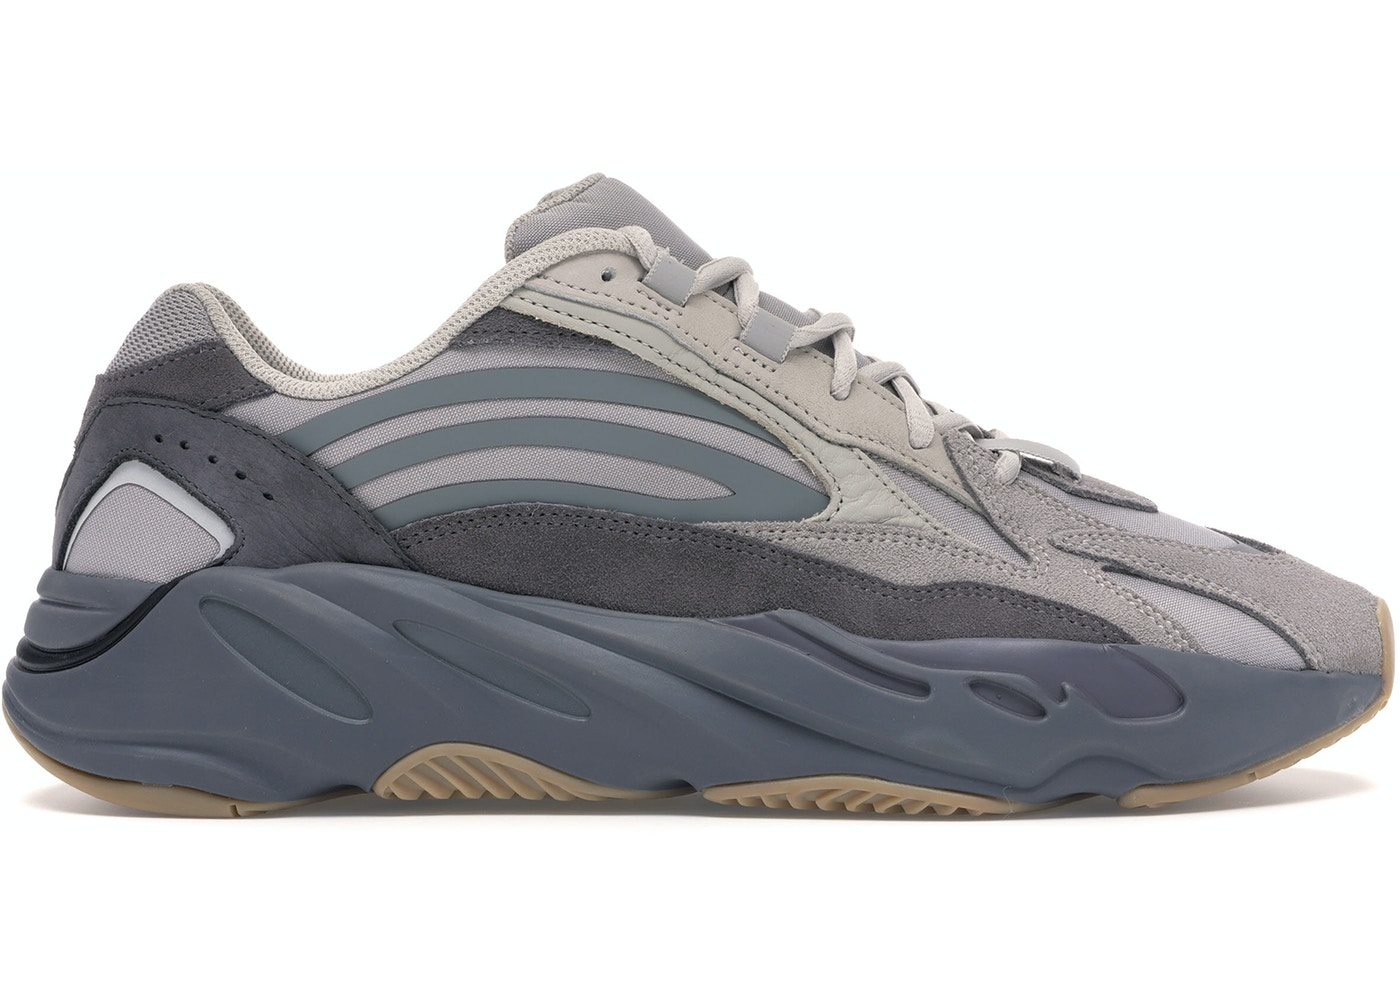 new style 0bb41 7d12f adidas Yeezy Boost 700 V2 Tephra